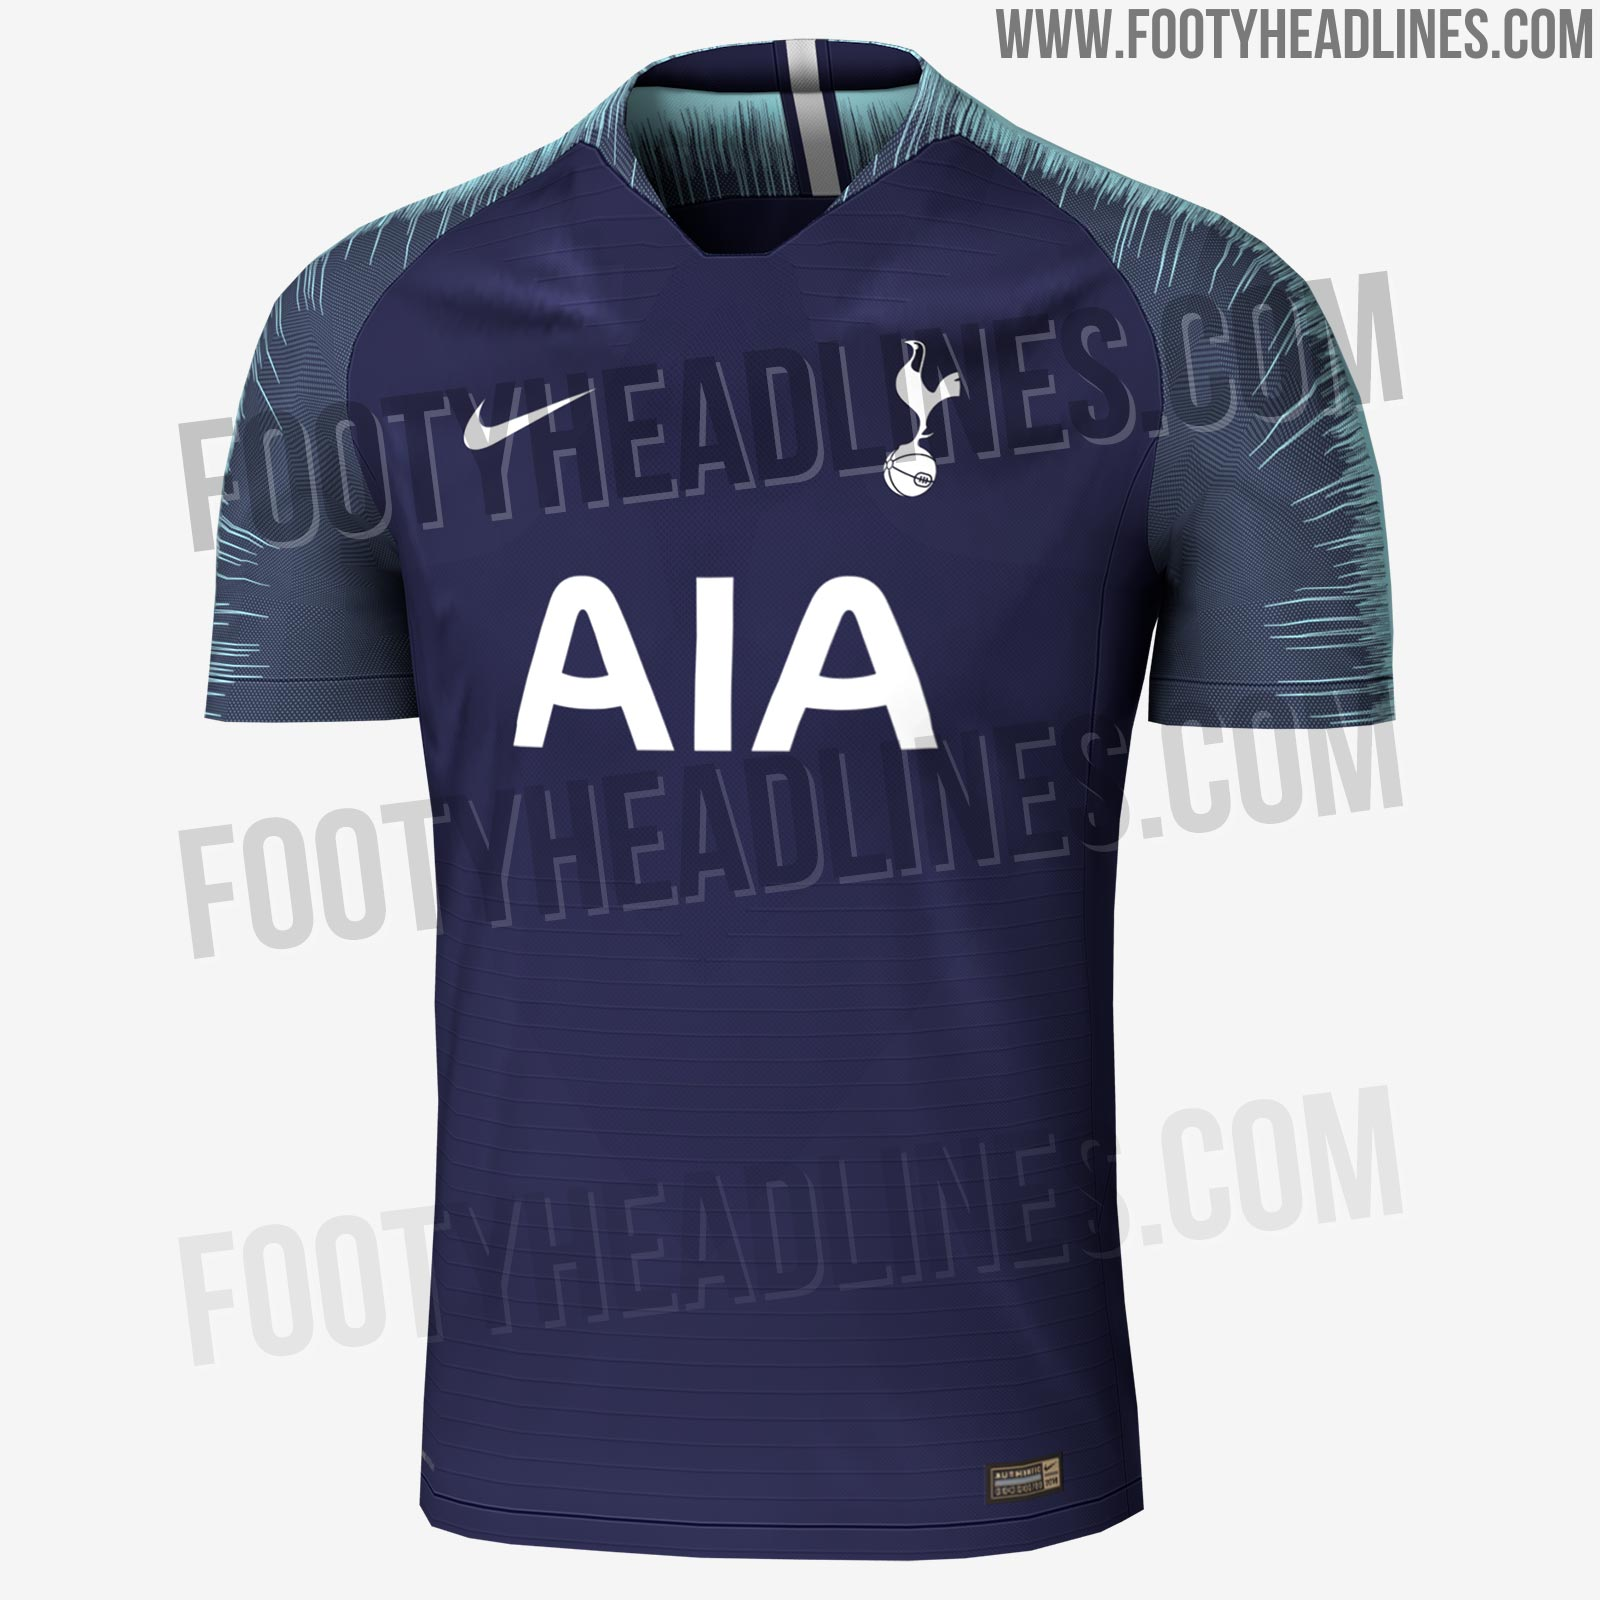 tottenham-18-19-away-kit-2.jpg